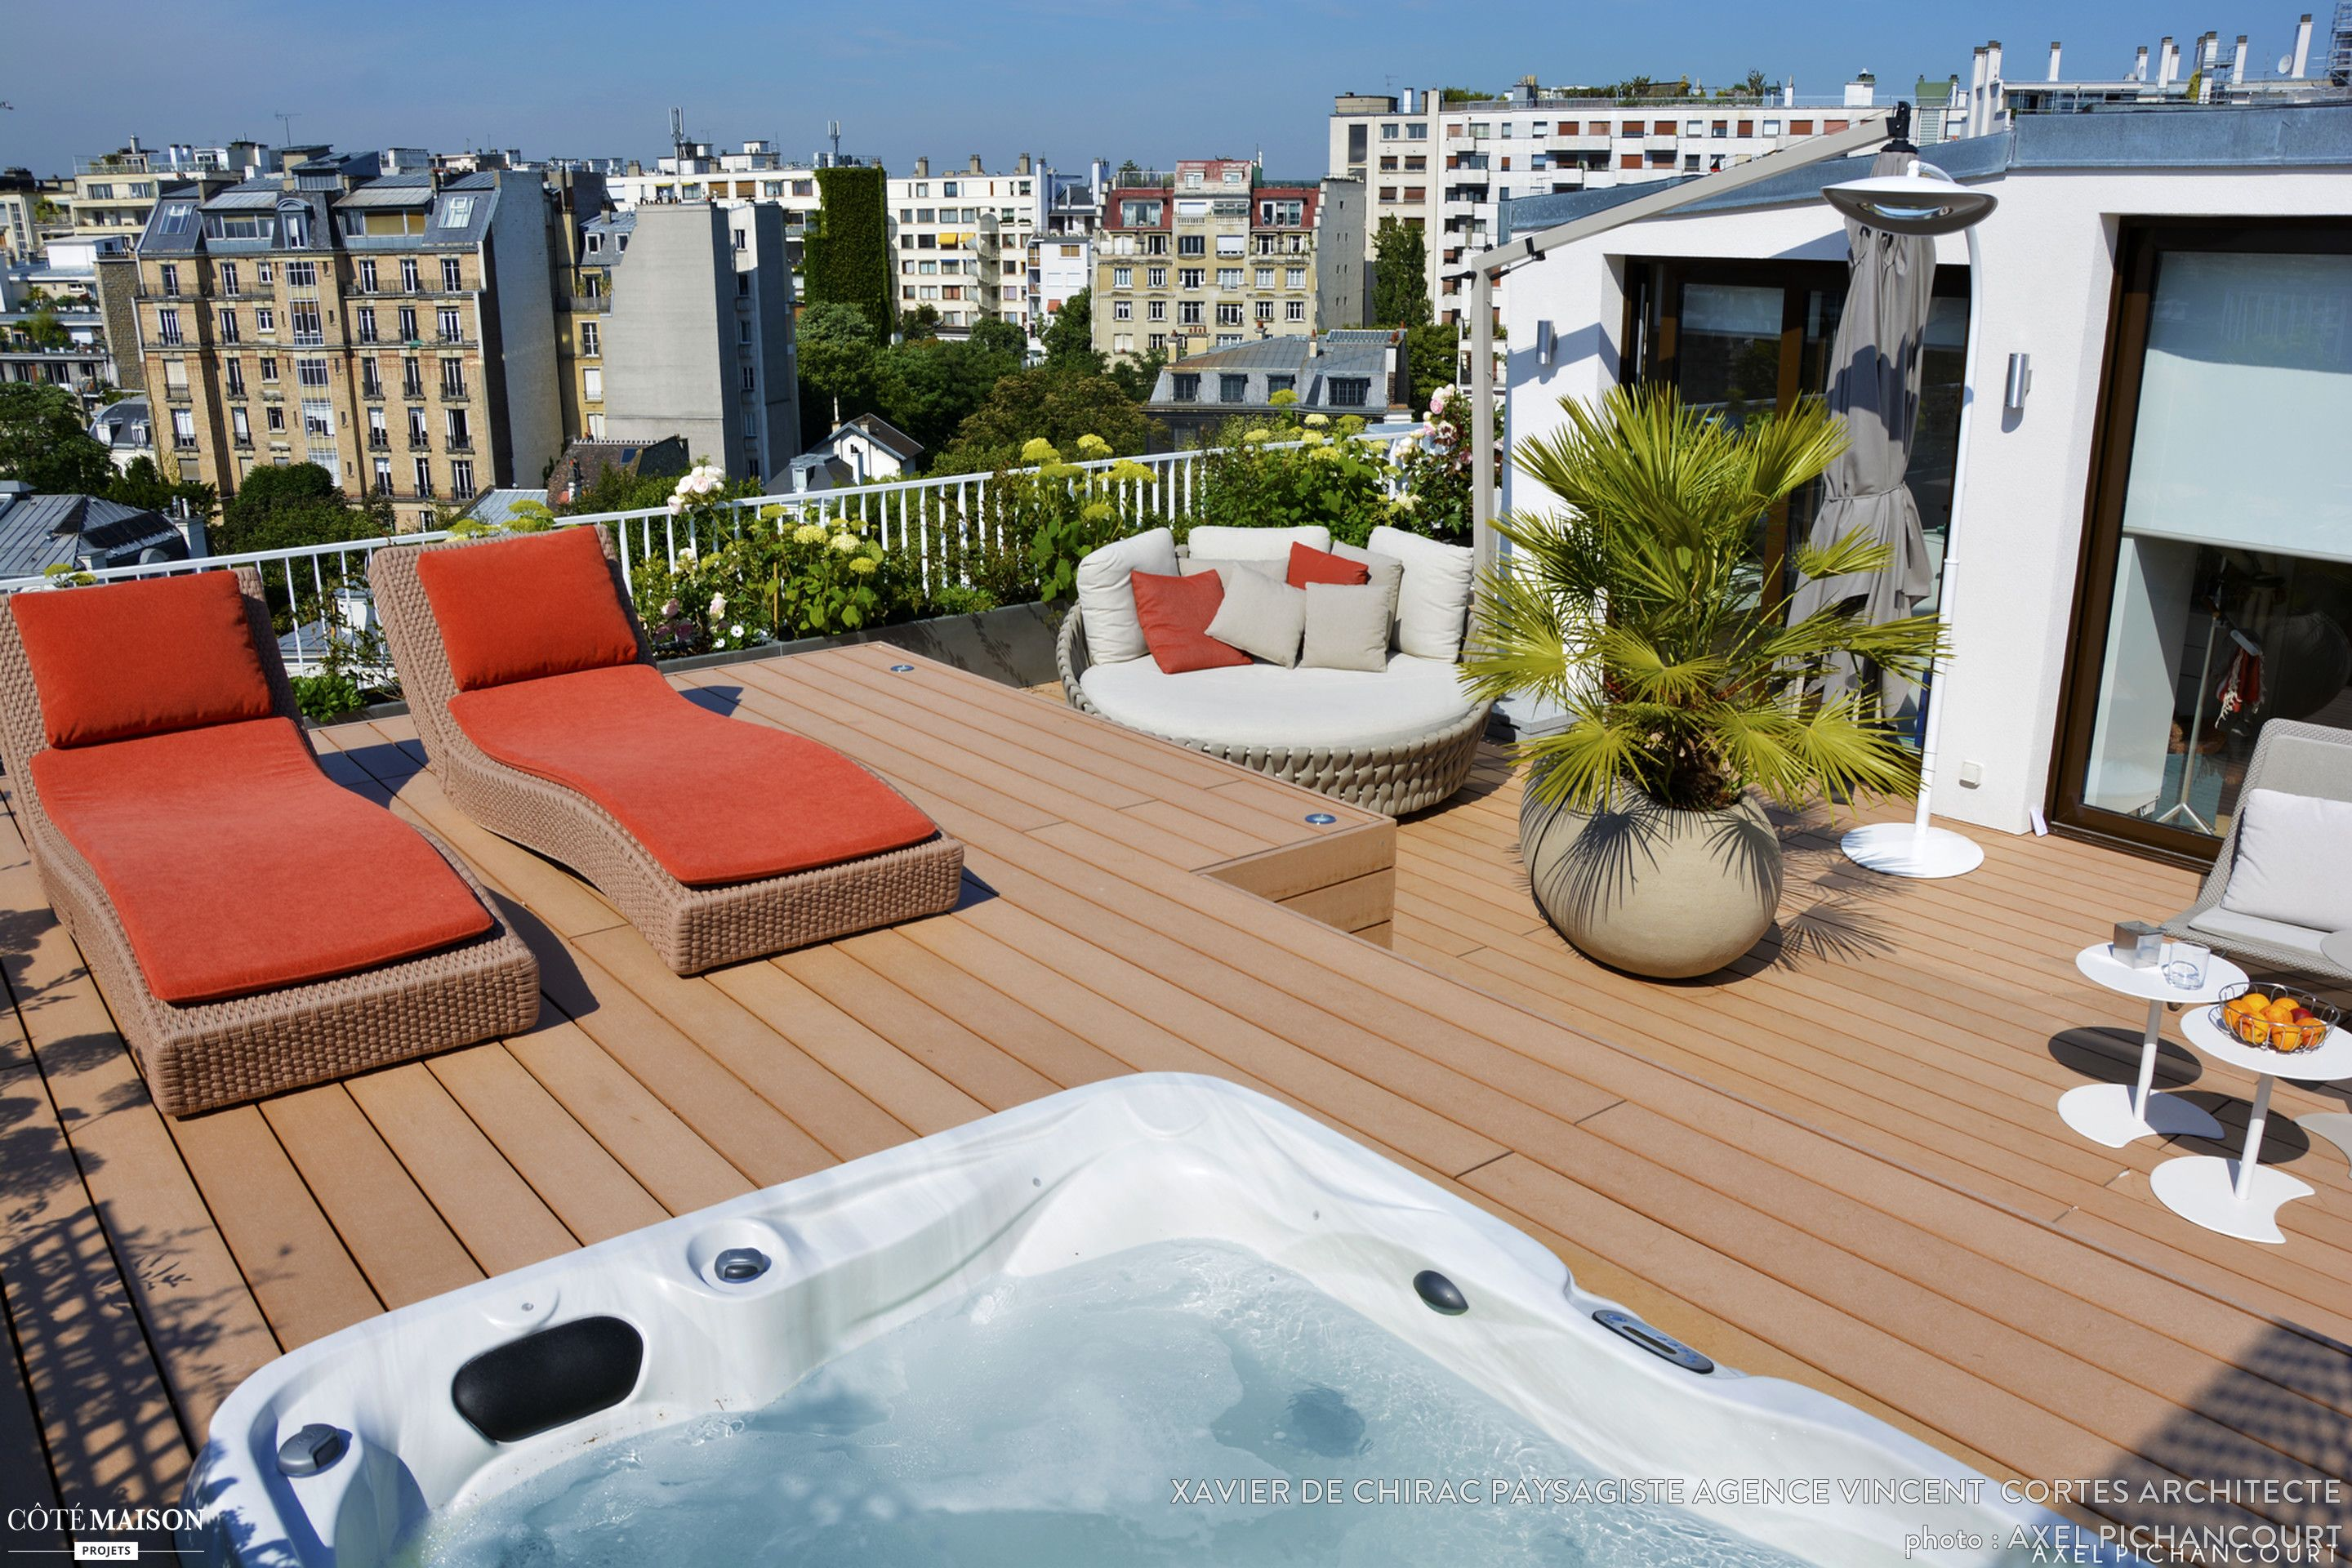 terrasse sur les toits avec jacuzzi transats et vue sur. Black Bedroom Furniture Sets. Home Design Ideas